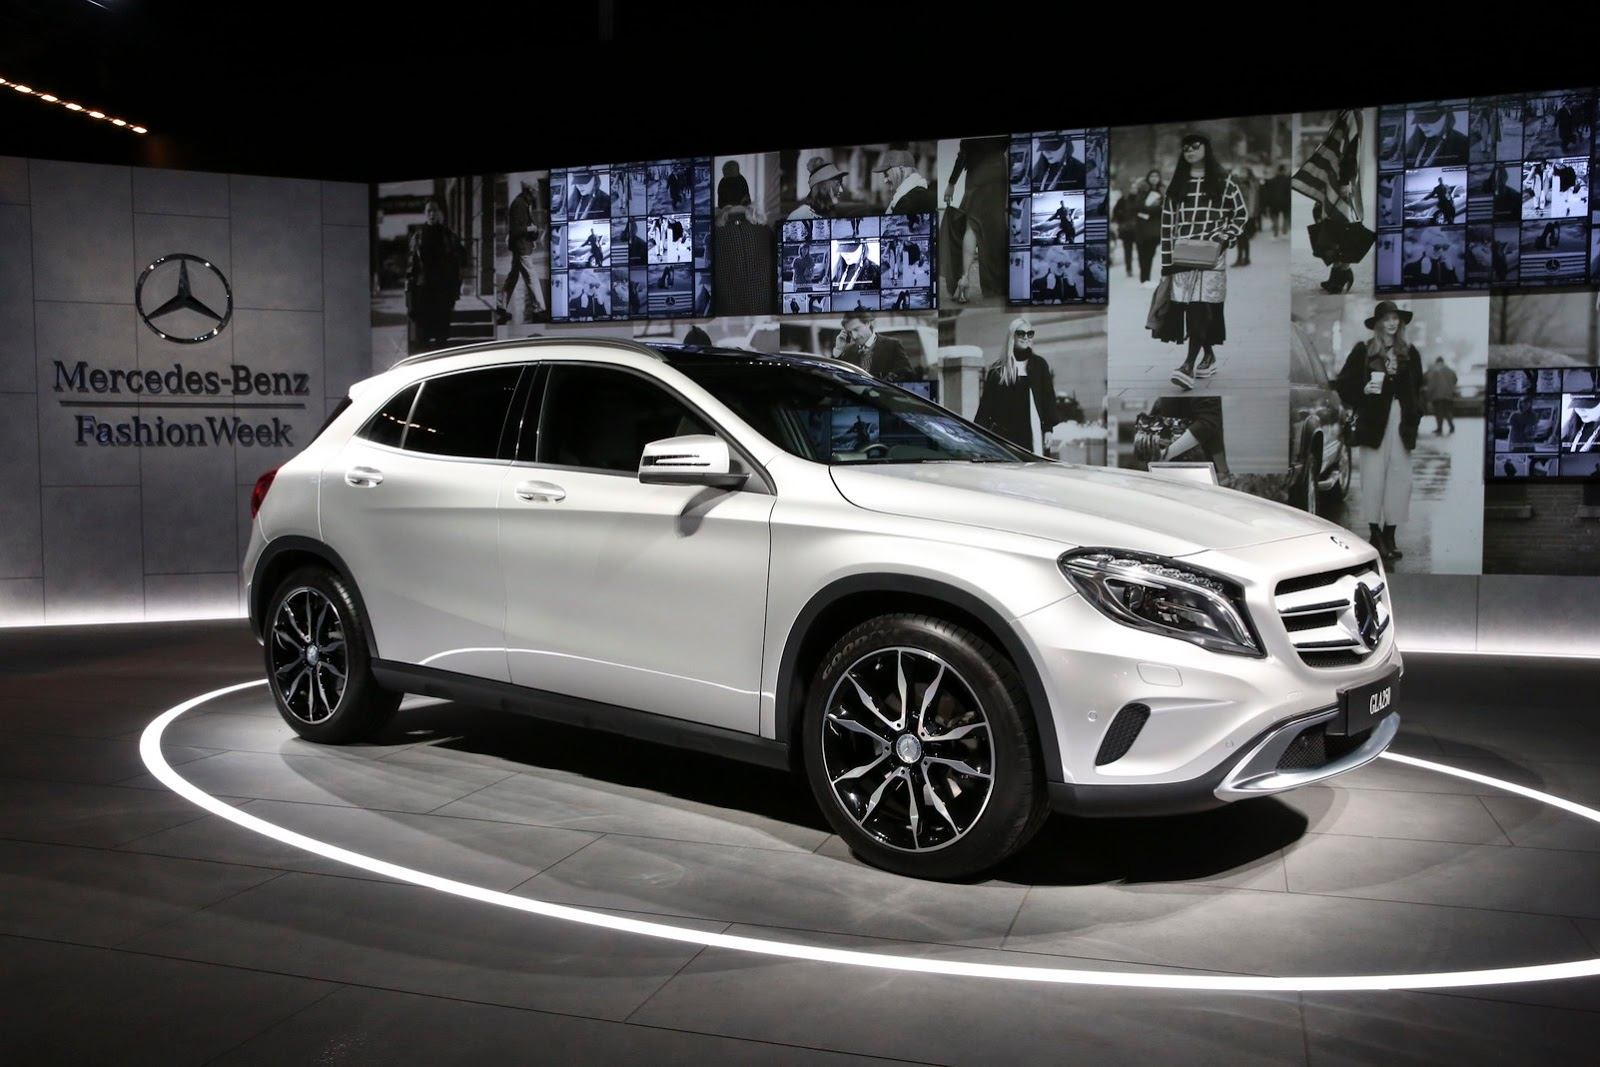 New 2015 Mercedes Gla Compact Suv From 31 300 In The U S